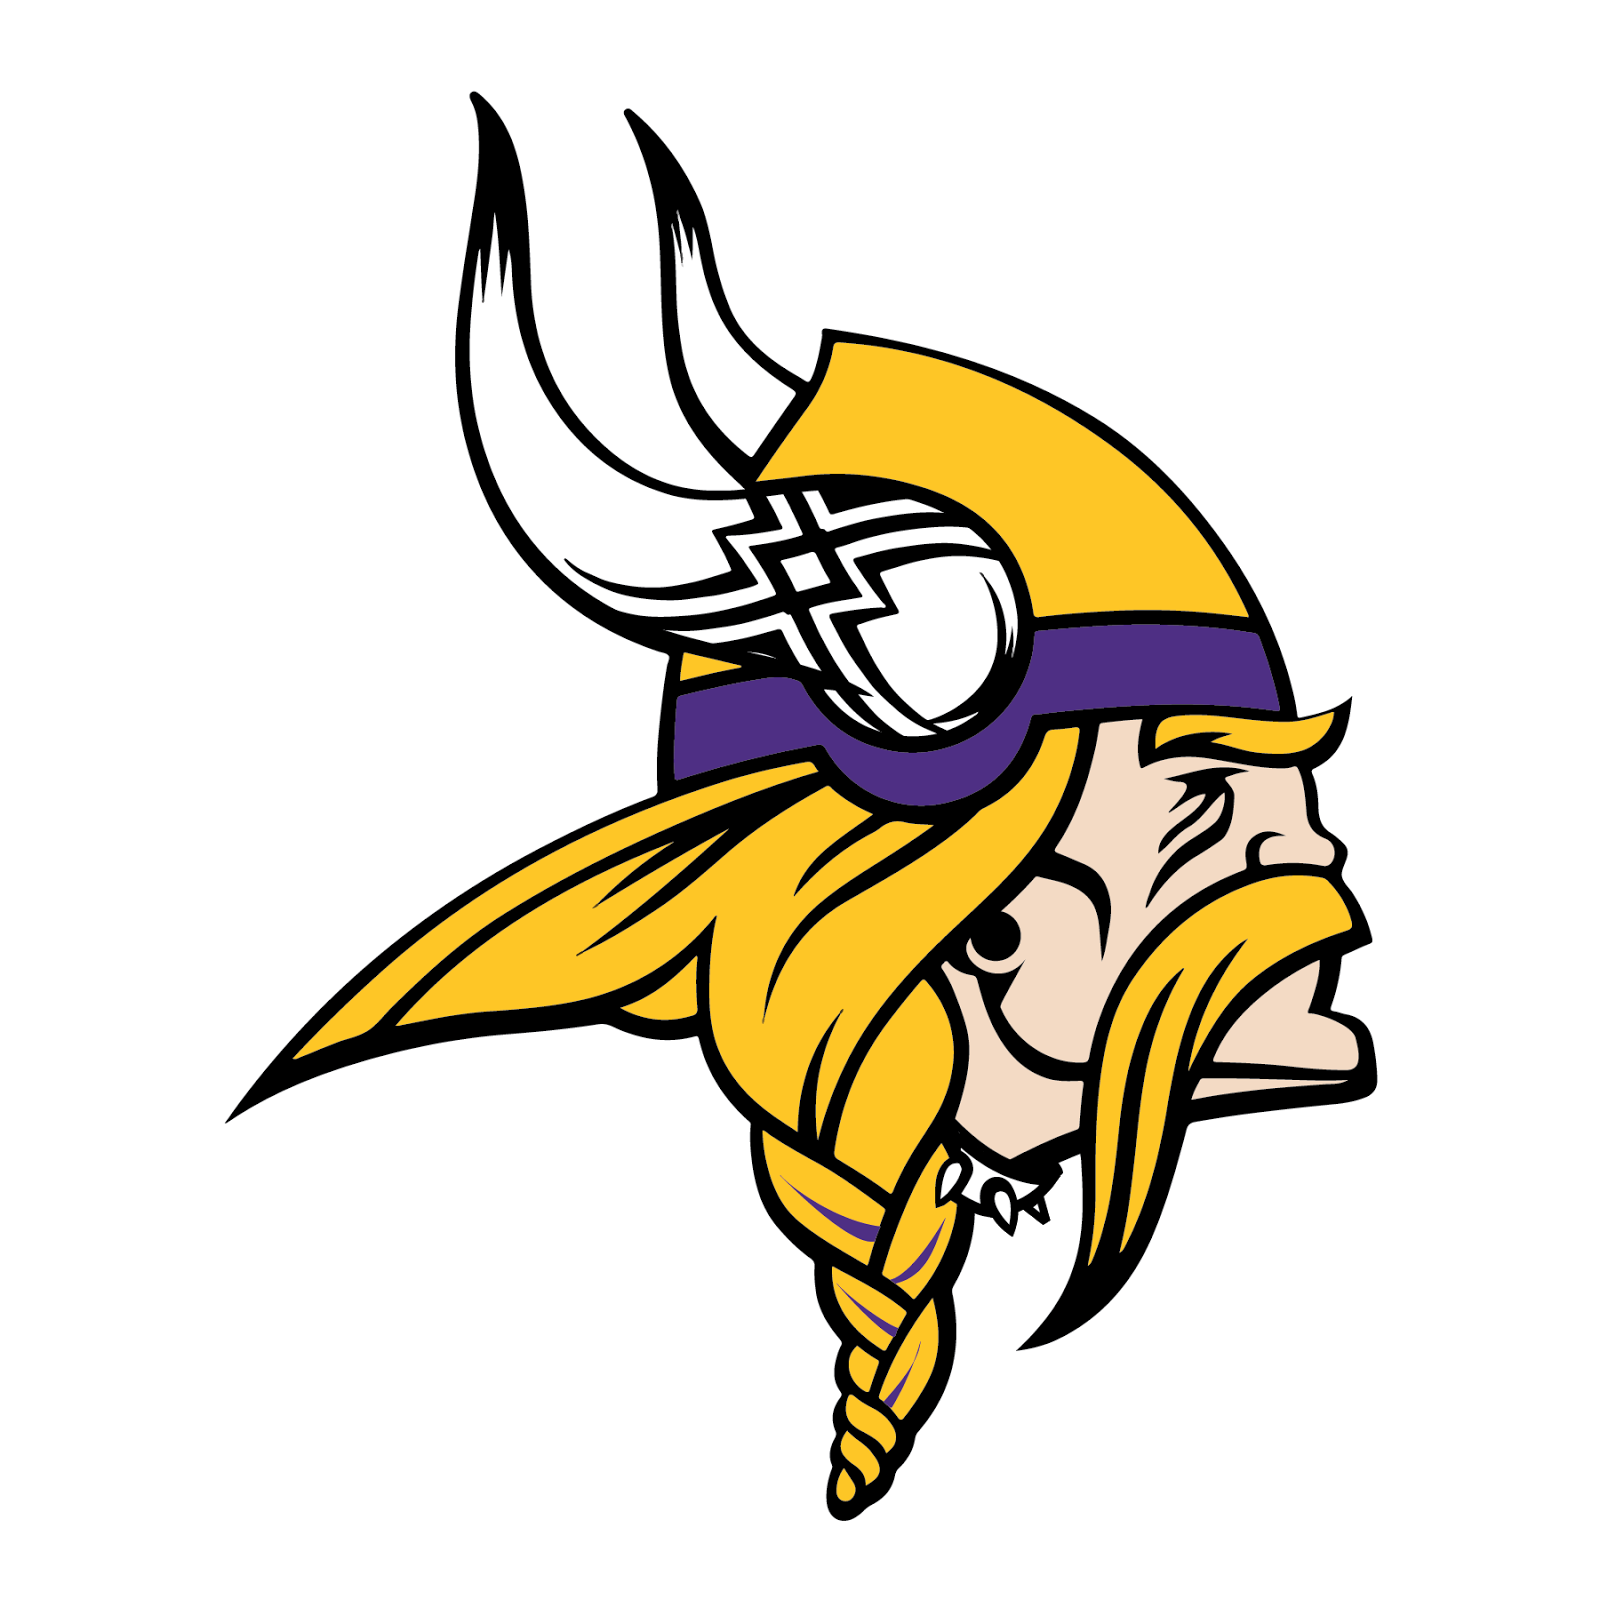 Minnesota Vikings, metal, logo, reimagined